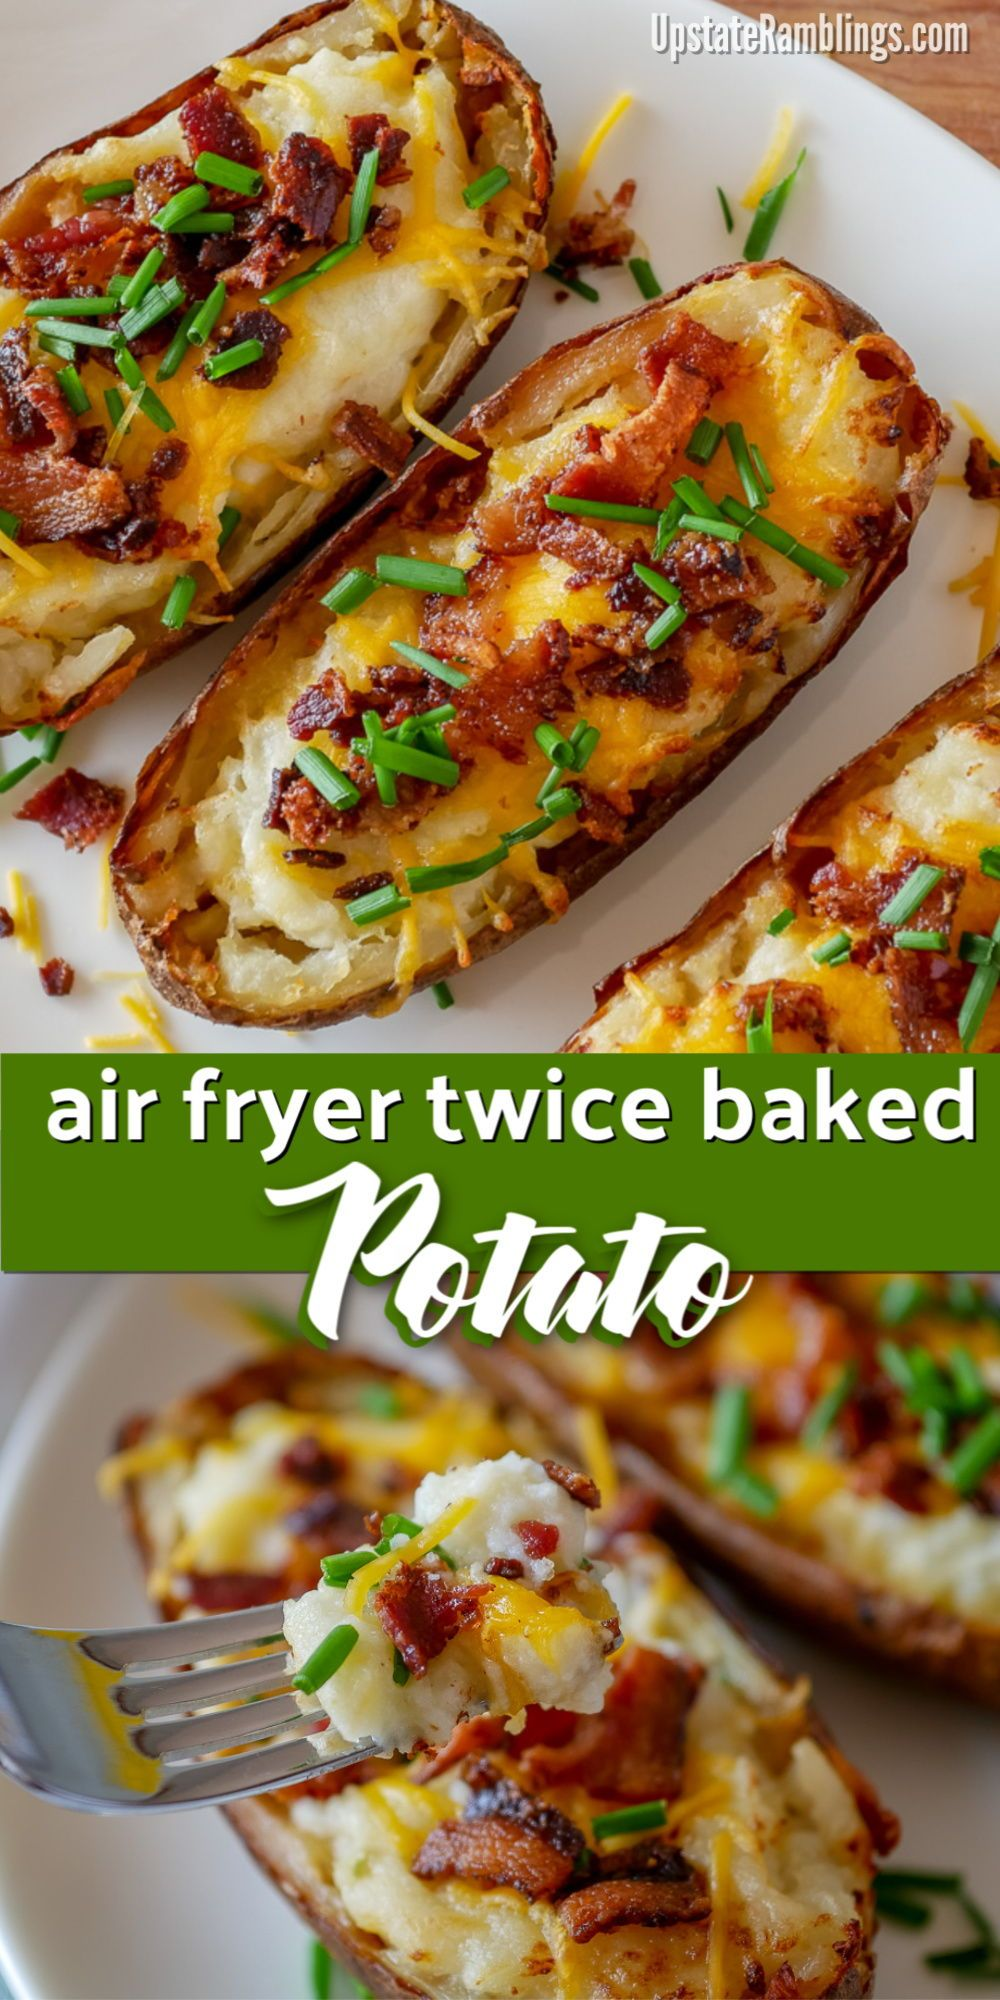 Air Fryer Twice Baked Potatoes #fooddinners